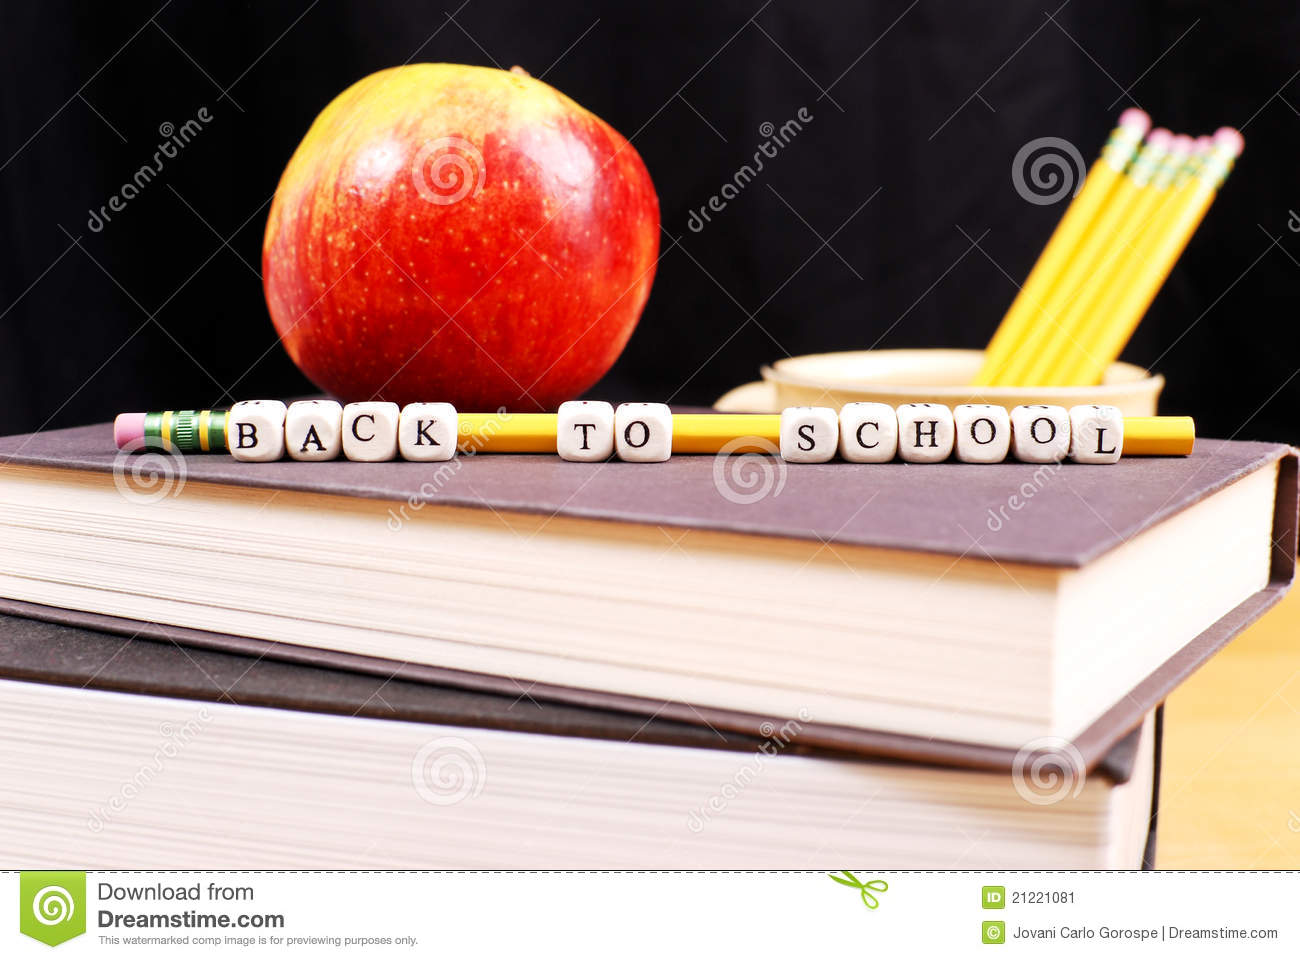 End Of Summer Vacation Stock Image - Image: 21221081